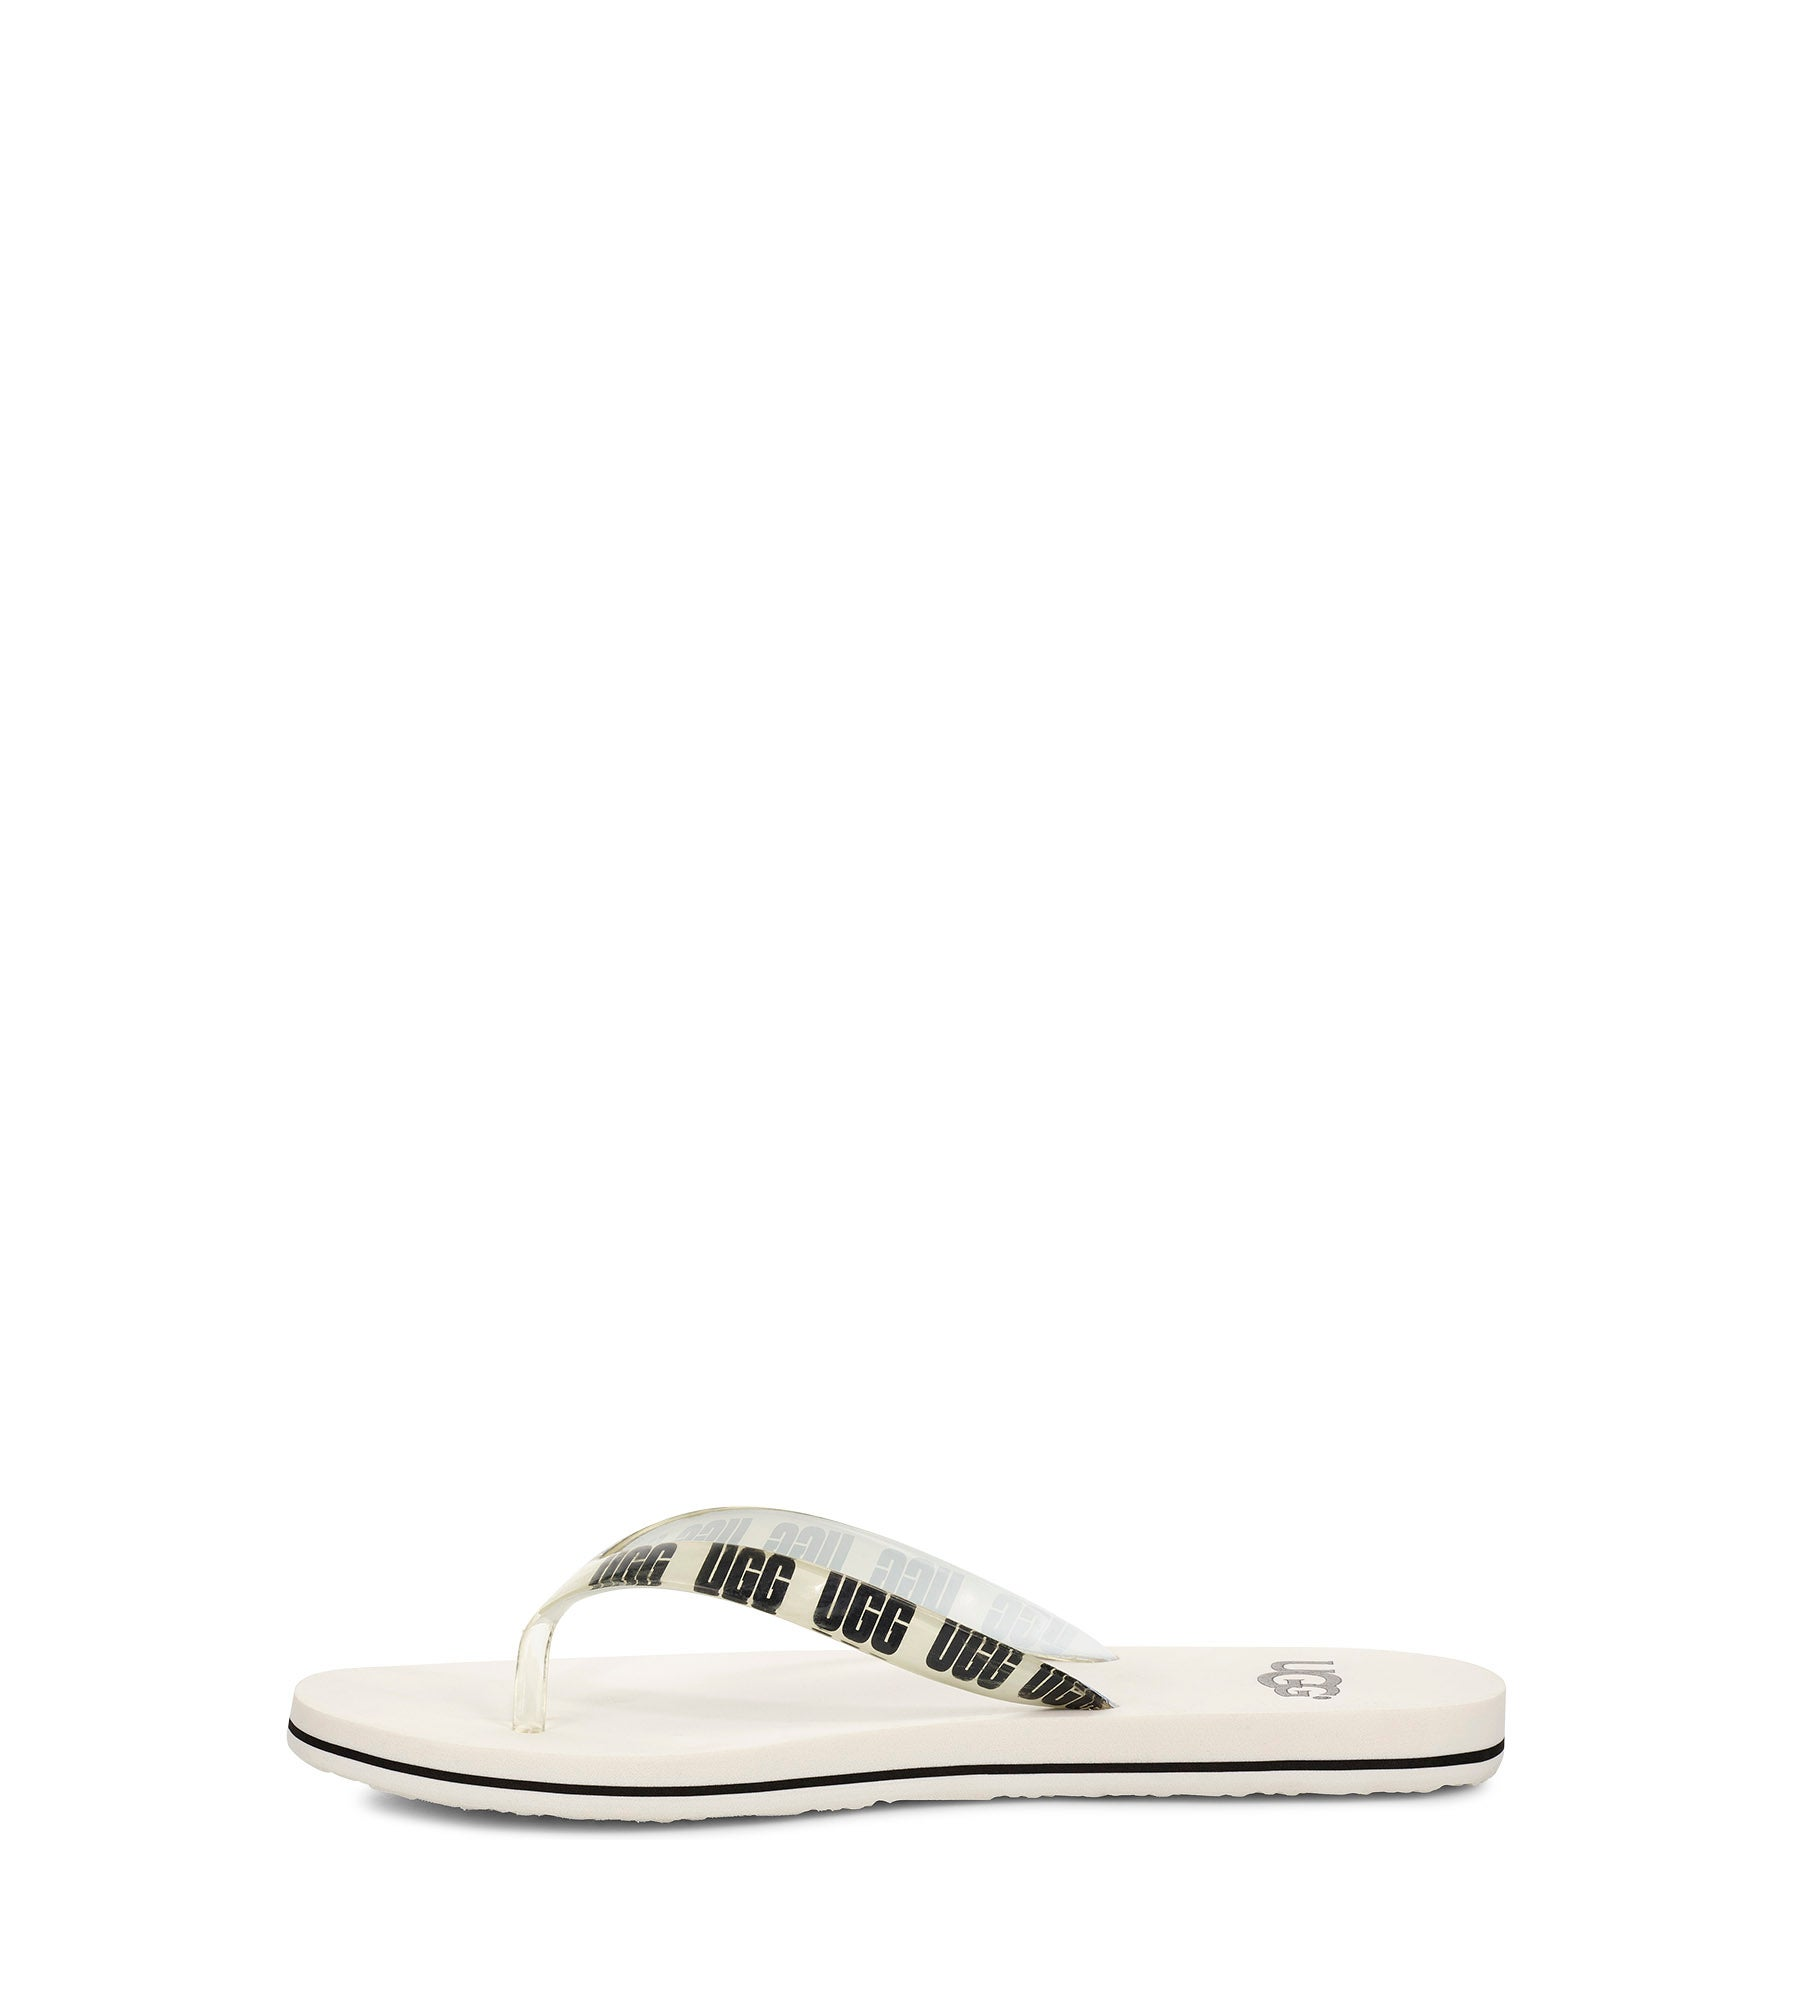 Lds Simi Graphic white thong sandal